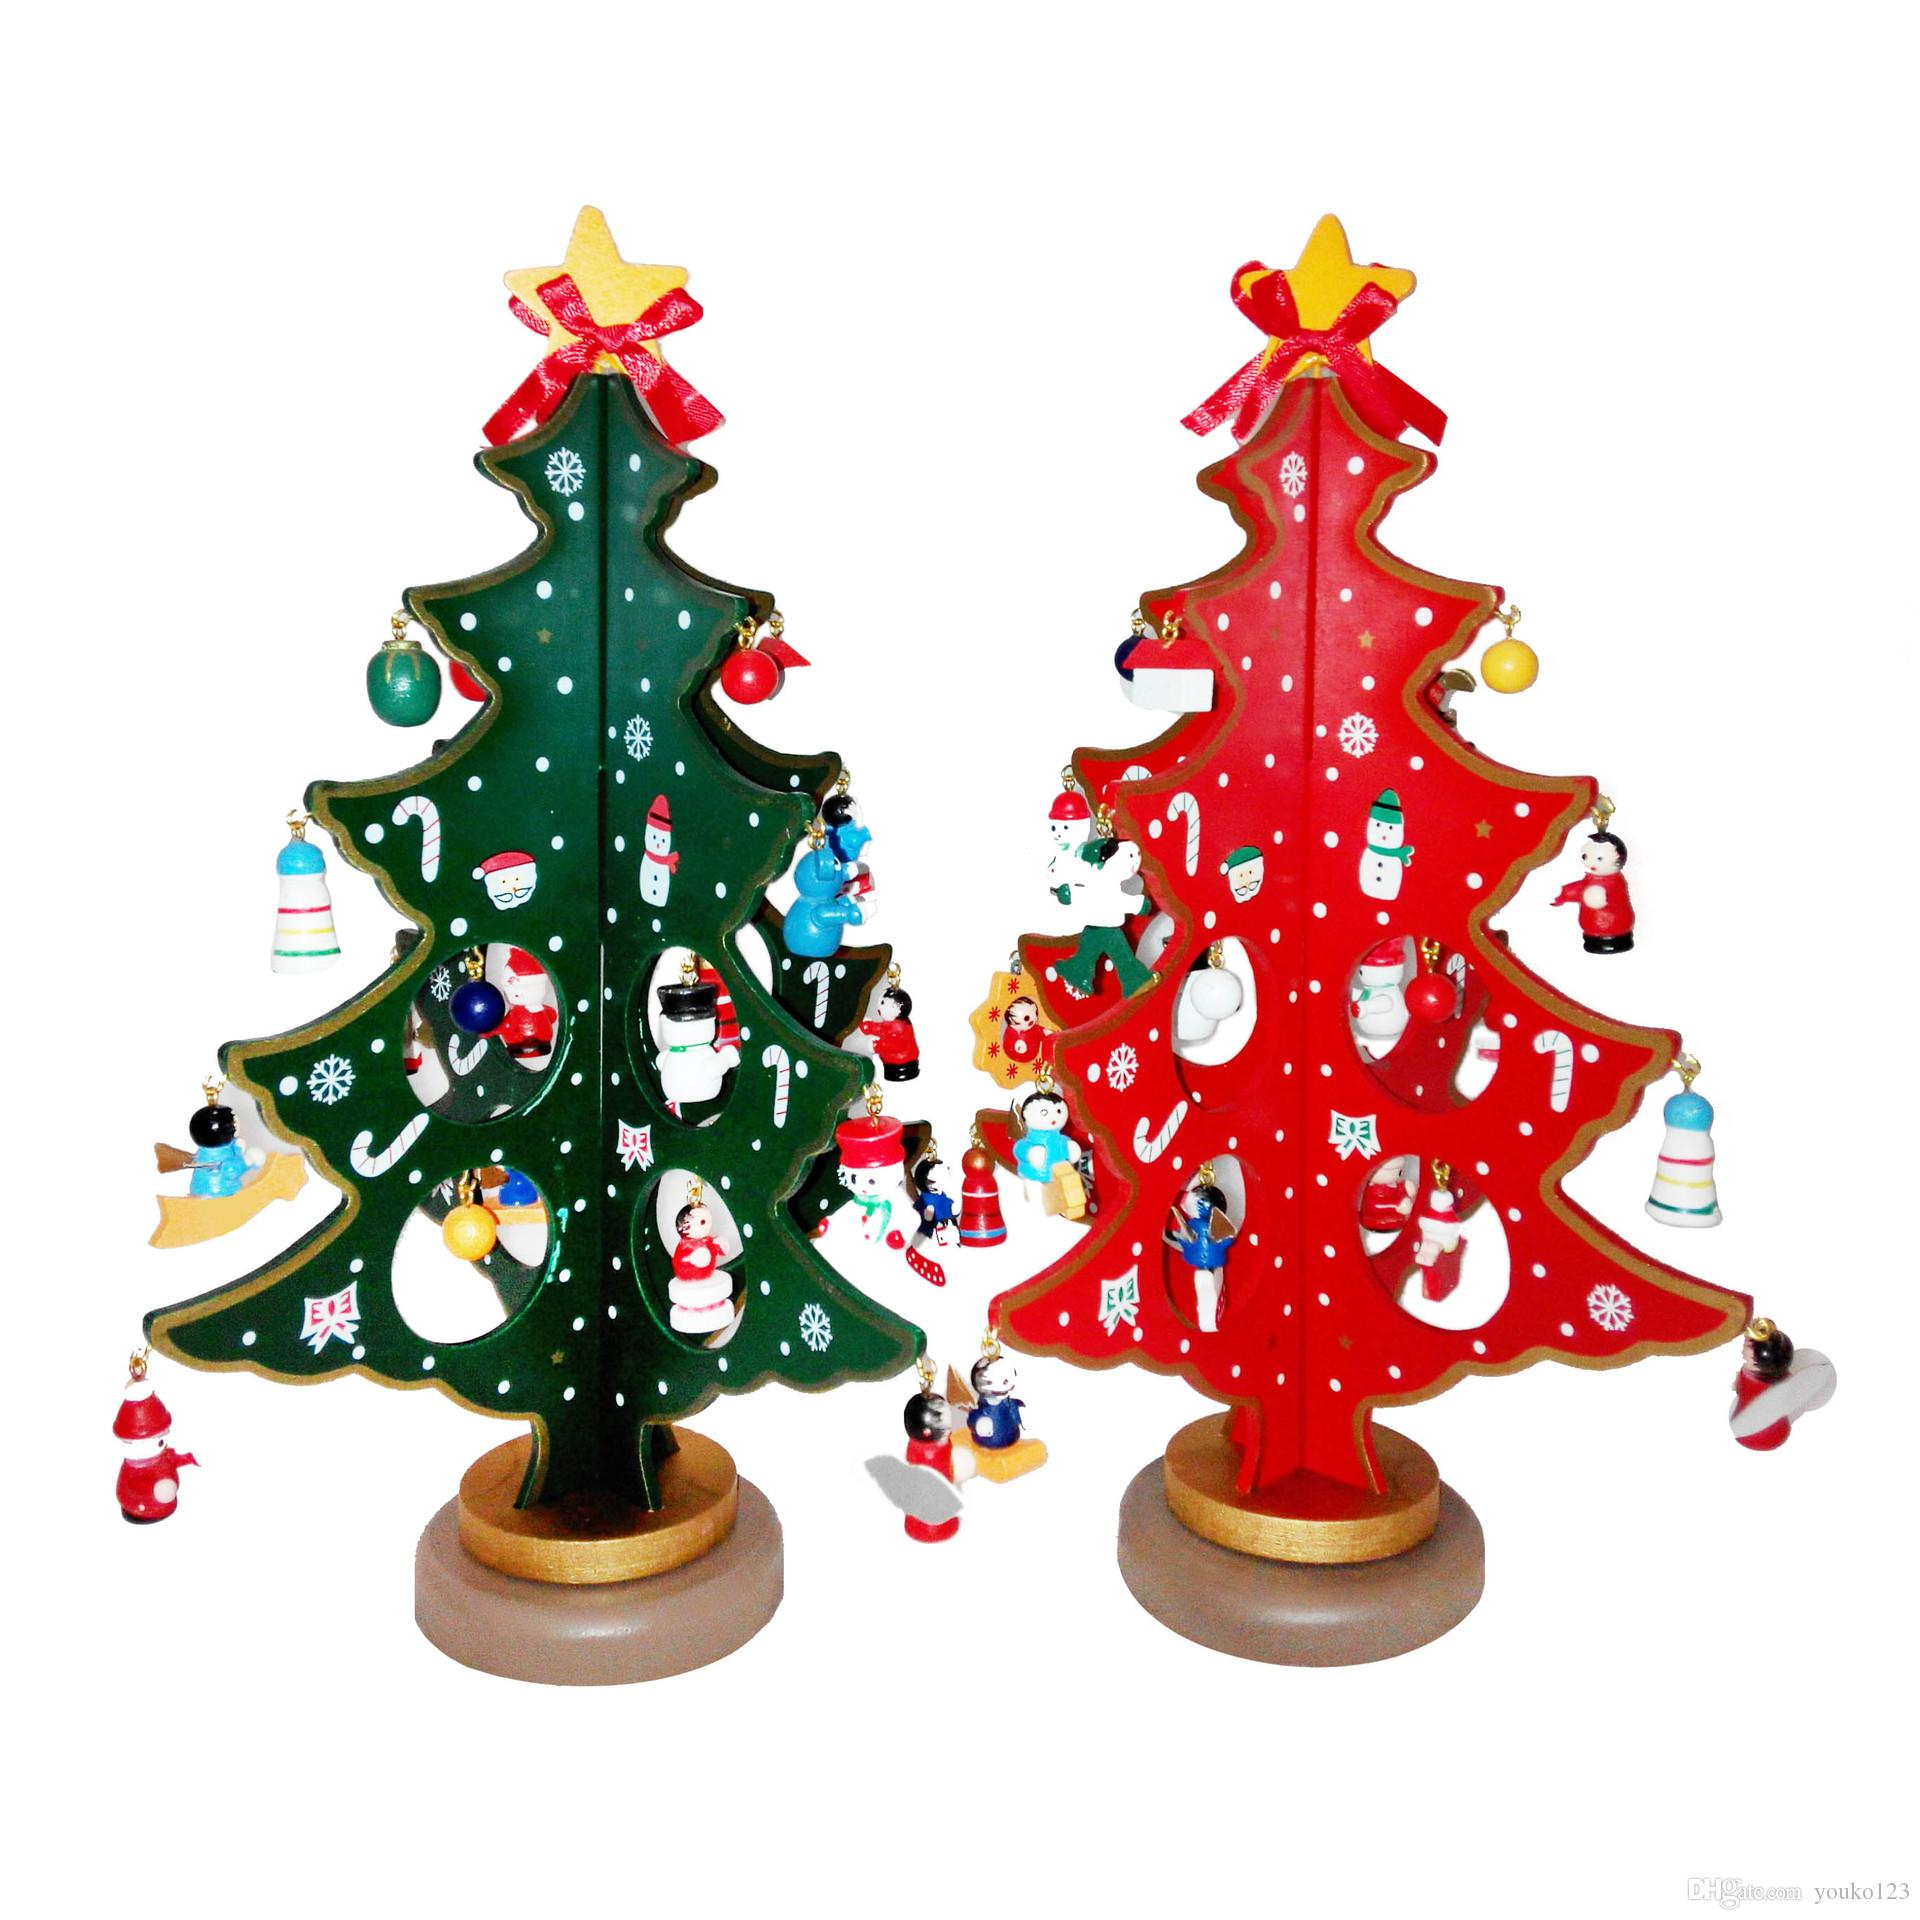 creative christmas ornaments festive gifts handmade wooden christmas tree desktop decoration diy manual assembly gift box buying christmas decorations cheap - Wooden Christmas Decorations